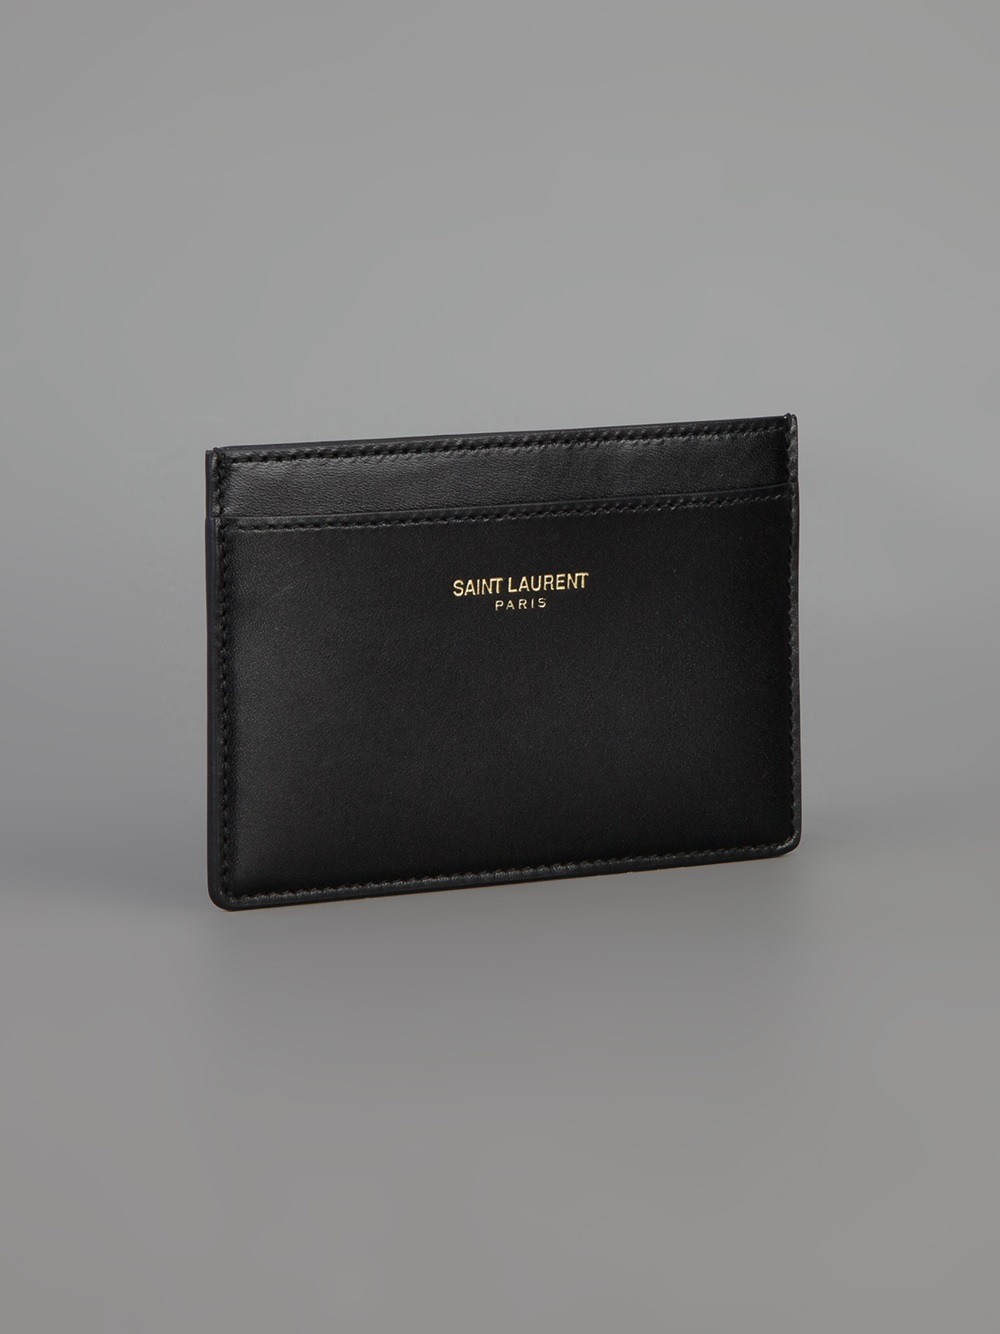 Saint Laurent Leather Card Holder In Black For Men Lyst